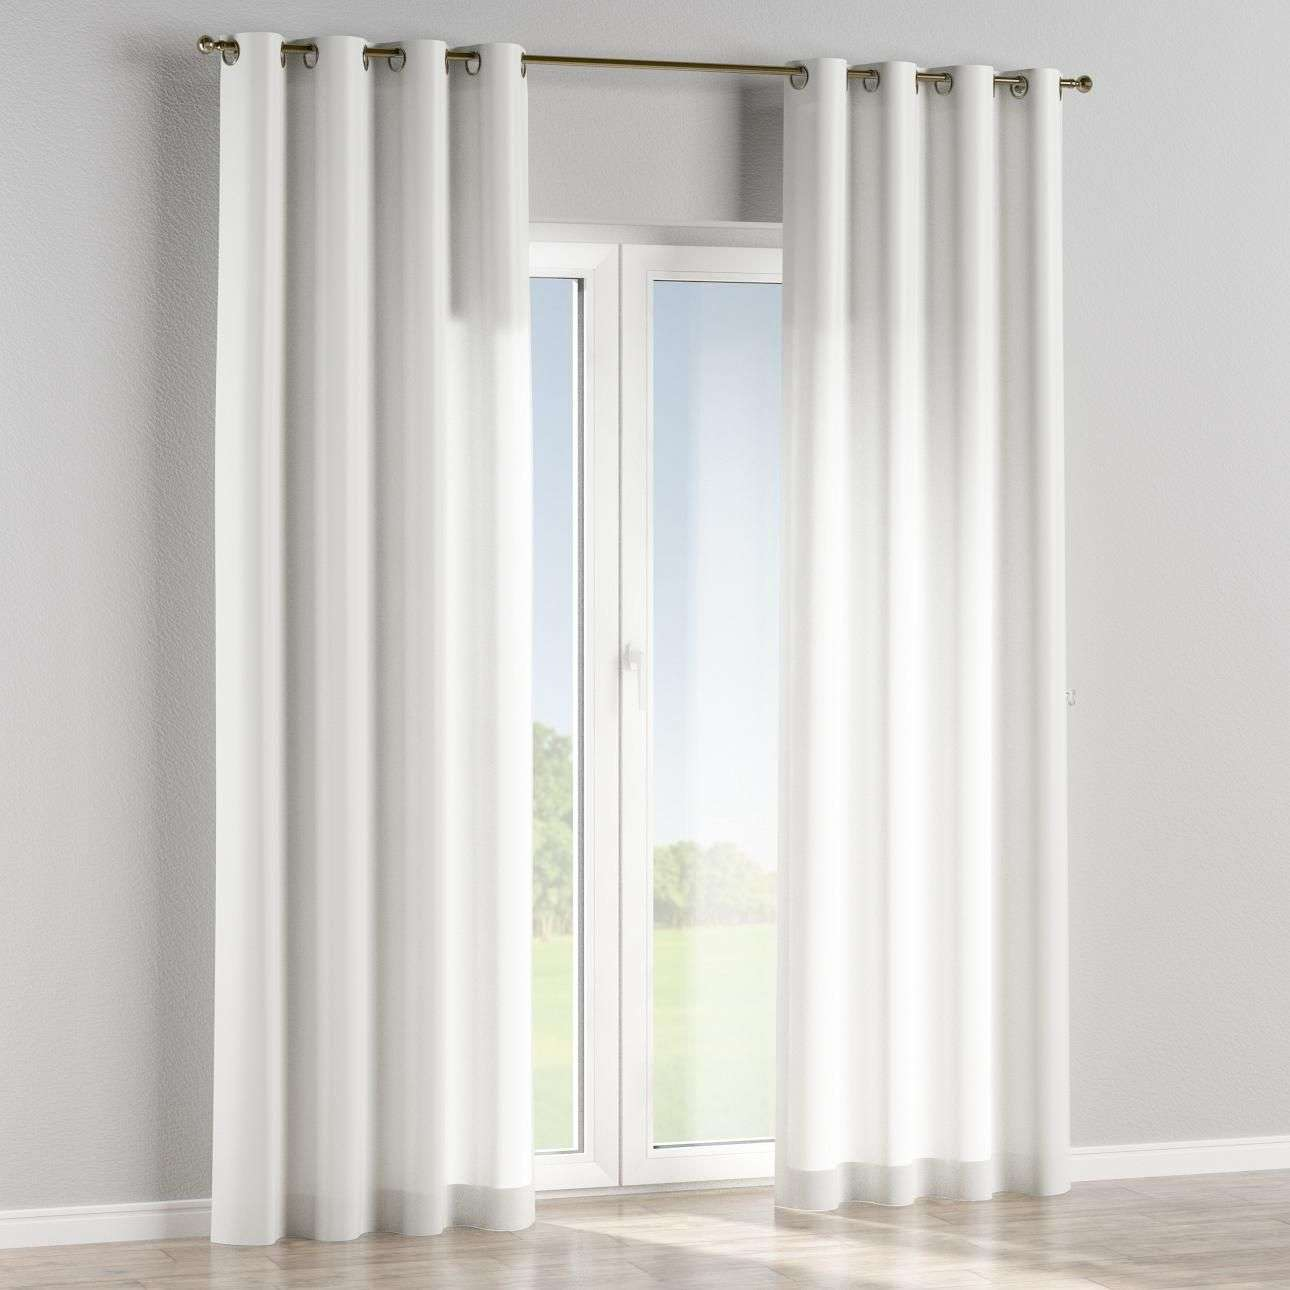 Eyelet lined curtains in collection Rustica, fabric: 140-59